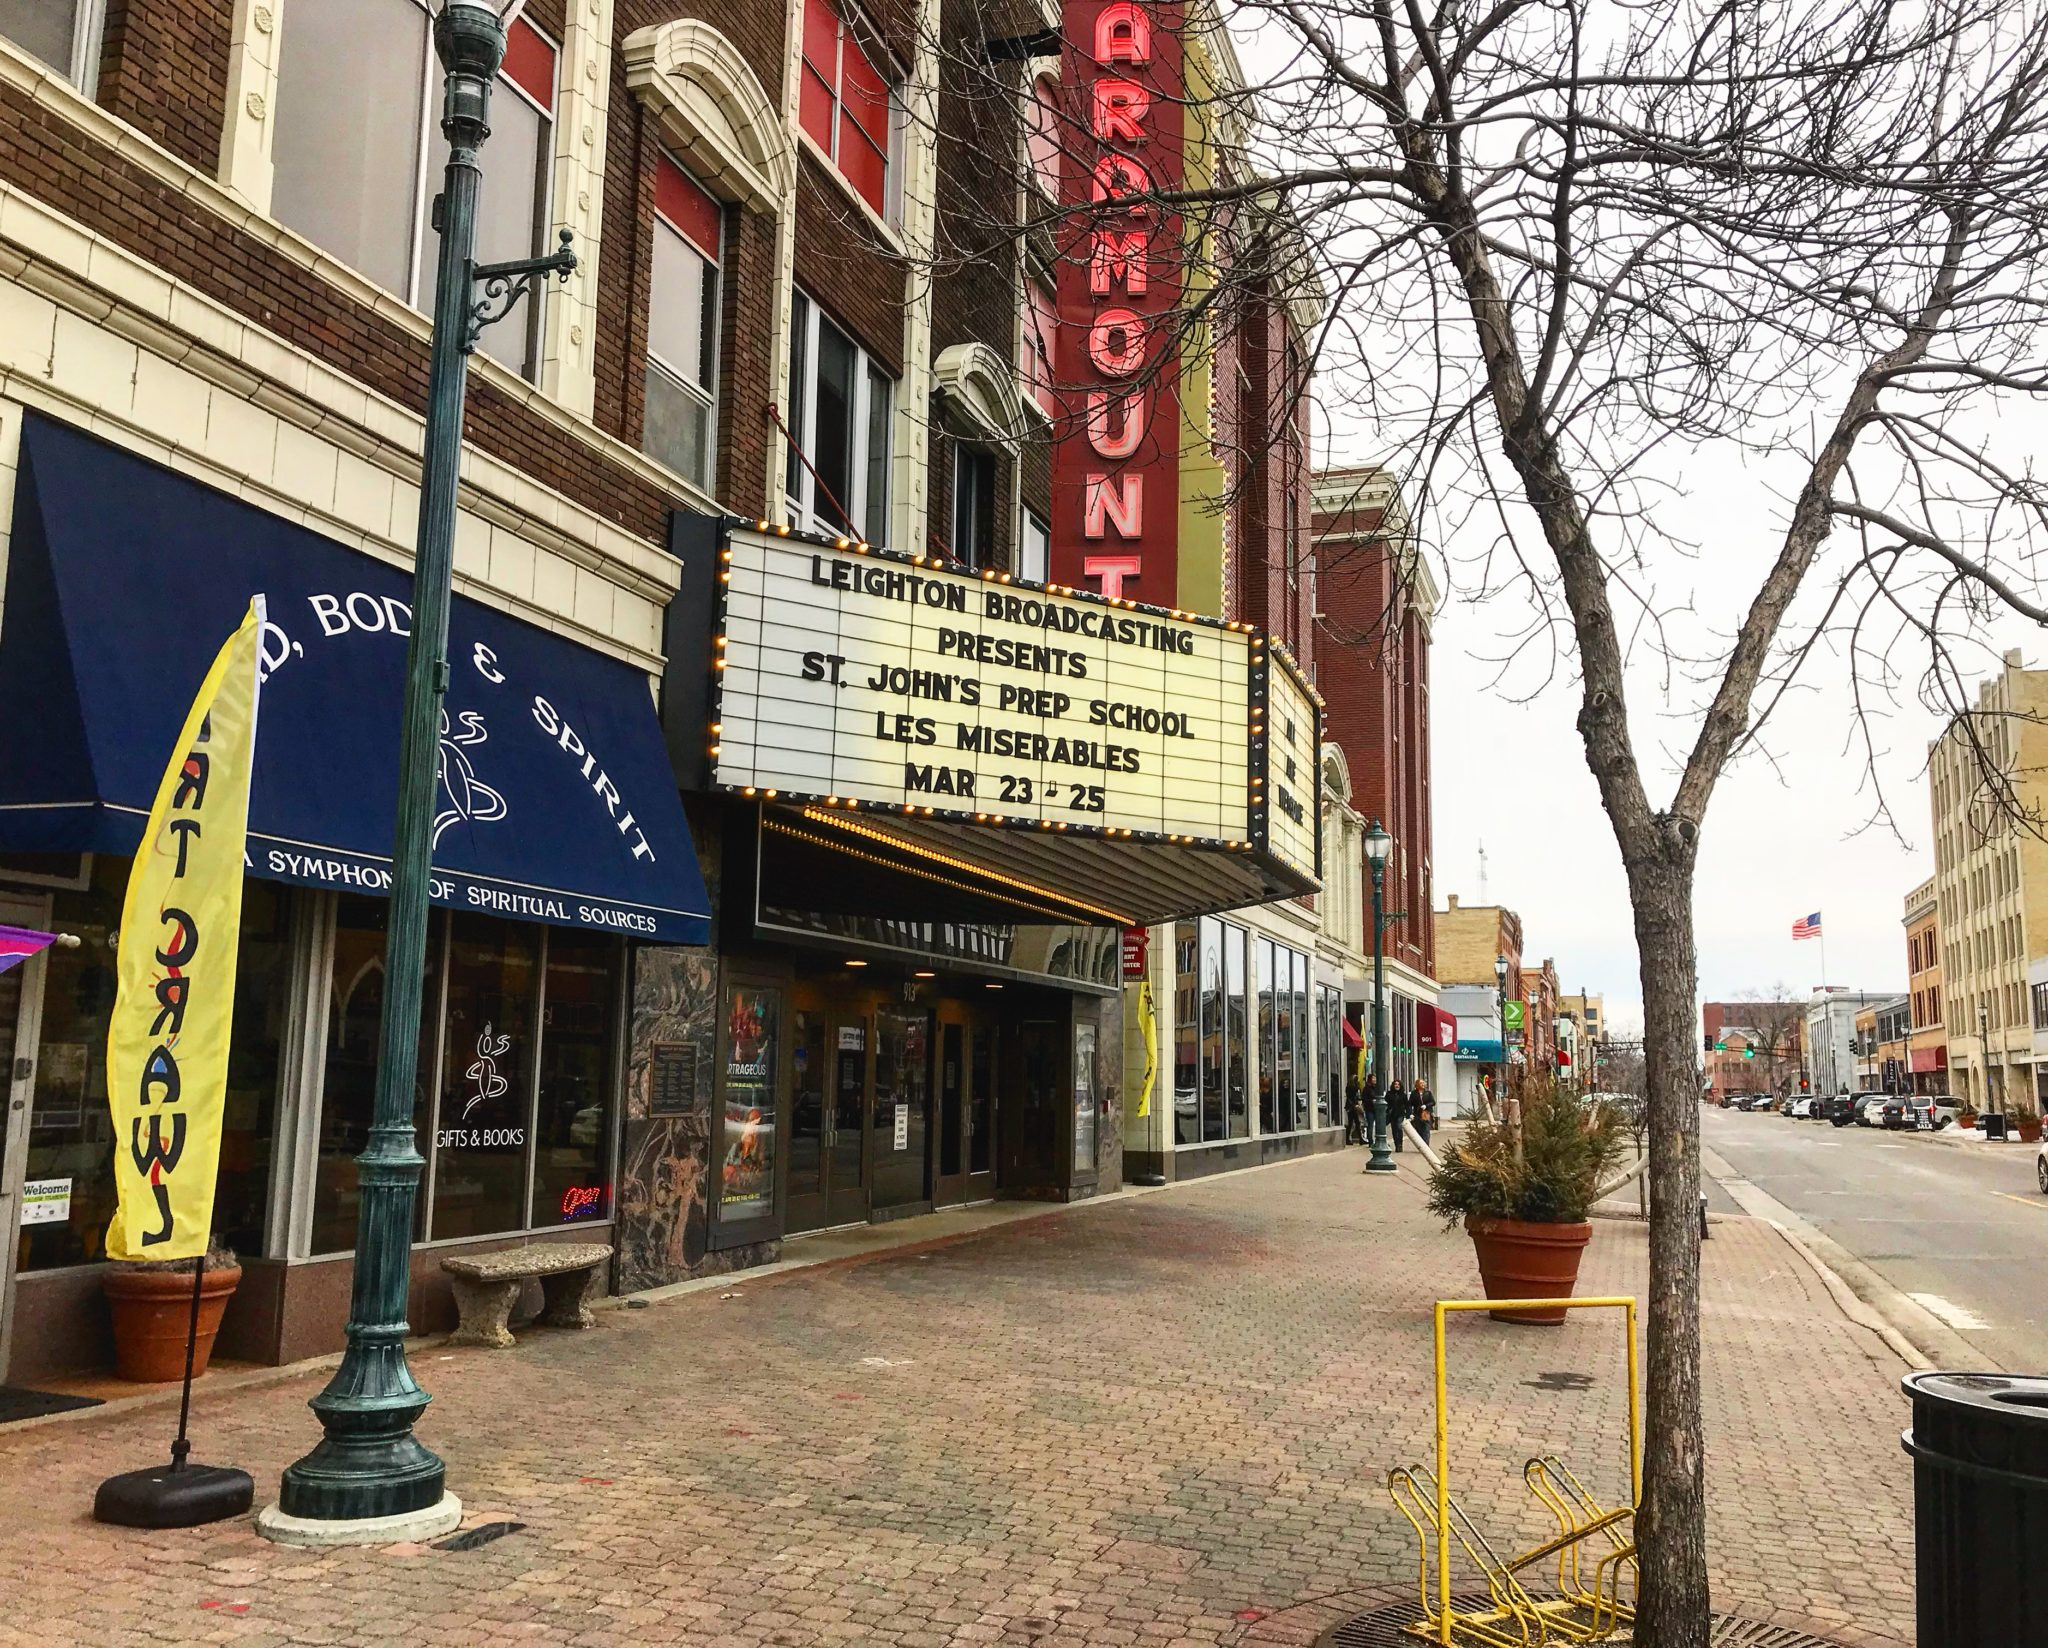 Paramount Theater marquee in Downtown, St. Cloud MN